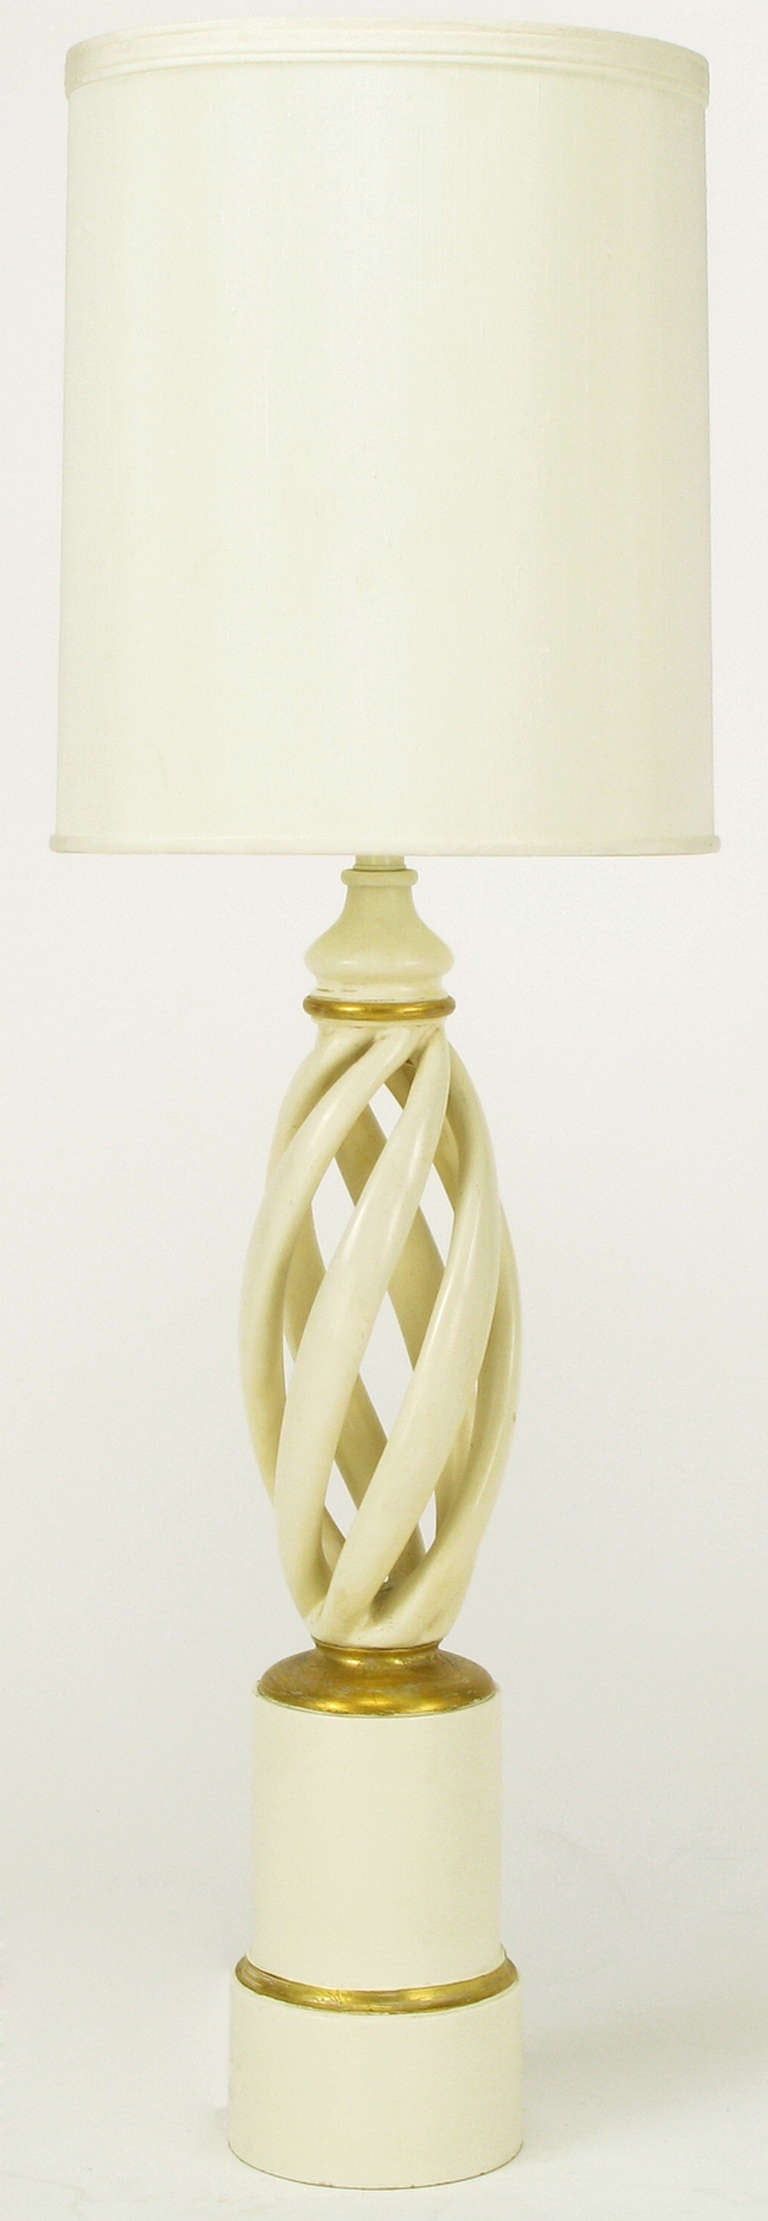 Frederick cooper ivory and gilt twisted table lamp for sale at 1stdibs frederick cooper ivory gilt twisted table lamp 2 geotapseo Image collections